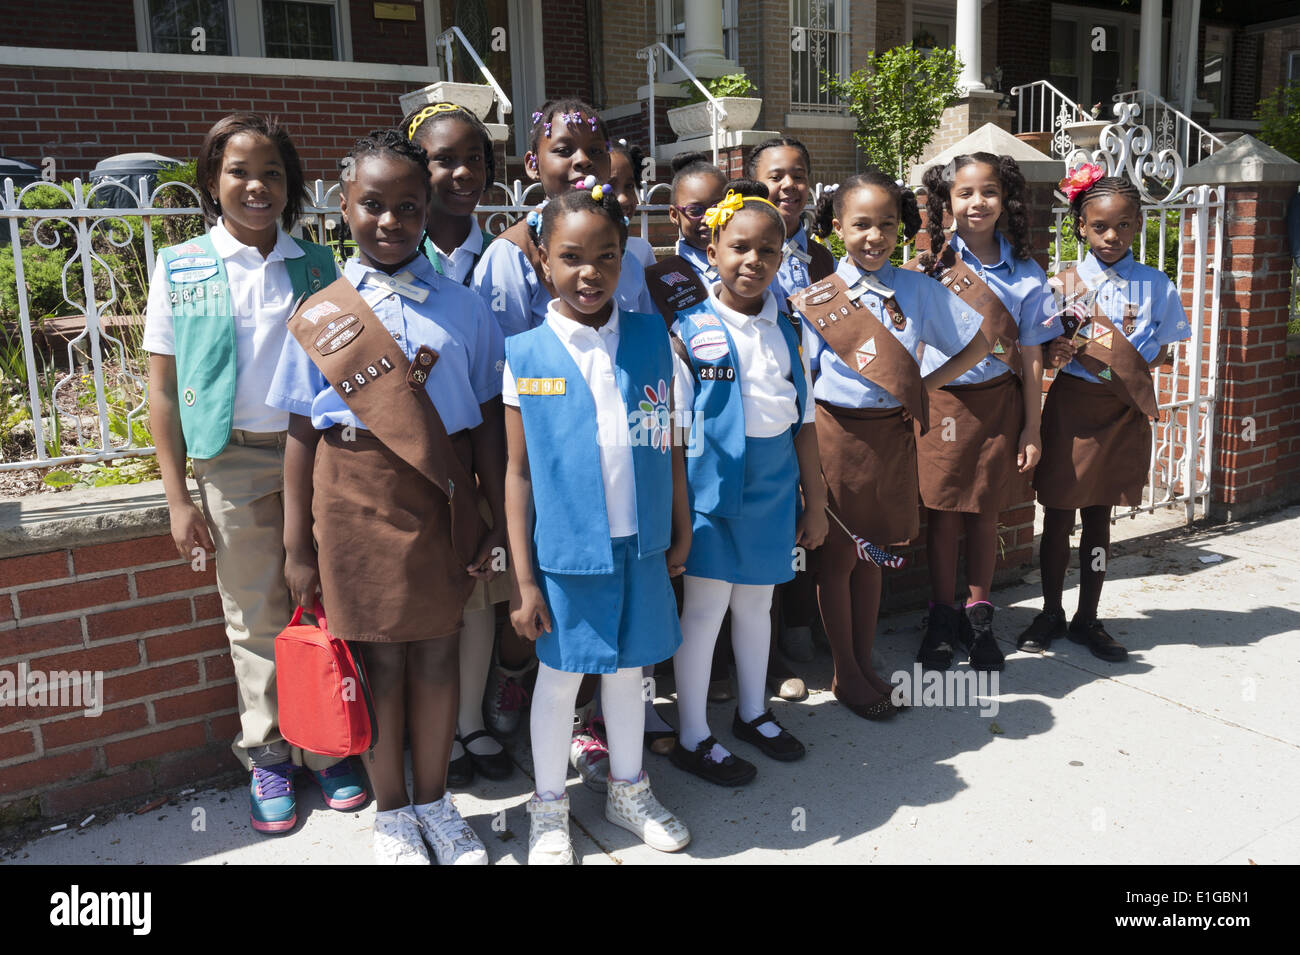 Girl Scout troop poses for photo at The Kings County Memorial Day Parade in the Bay Ridge Section of Brooklyn, NY, May 26, 2014. - Stock Image